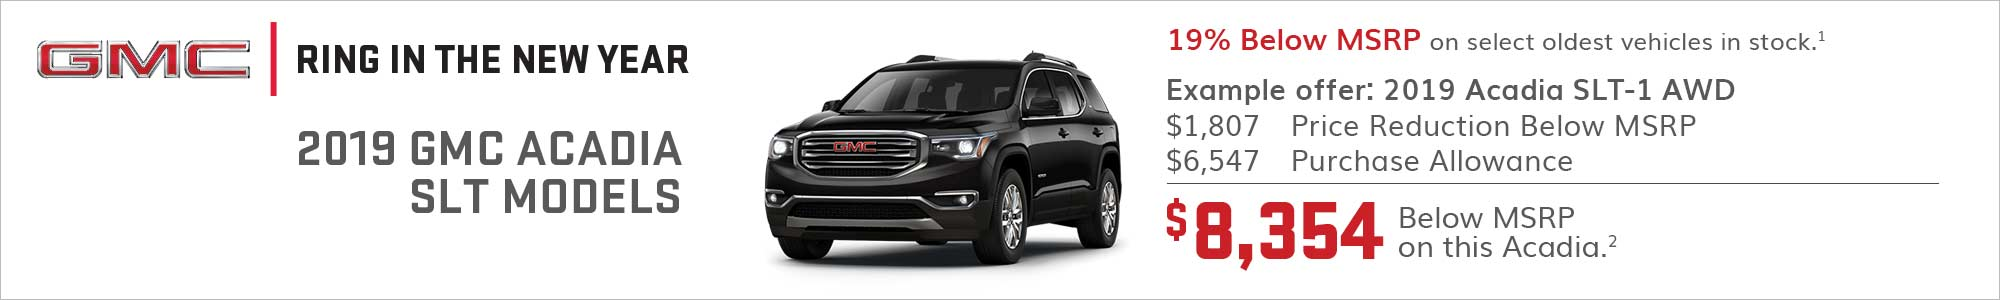 2019 GMC Acadia SLT models 19% below MSRP on select oldest vehicles in stock.